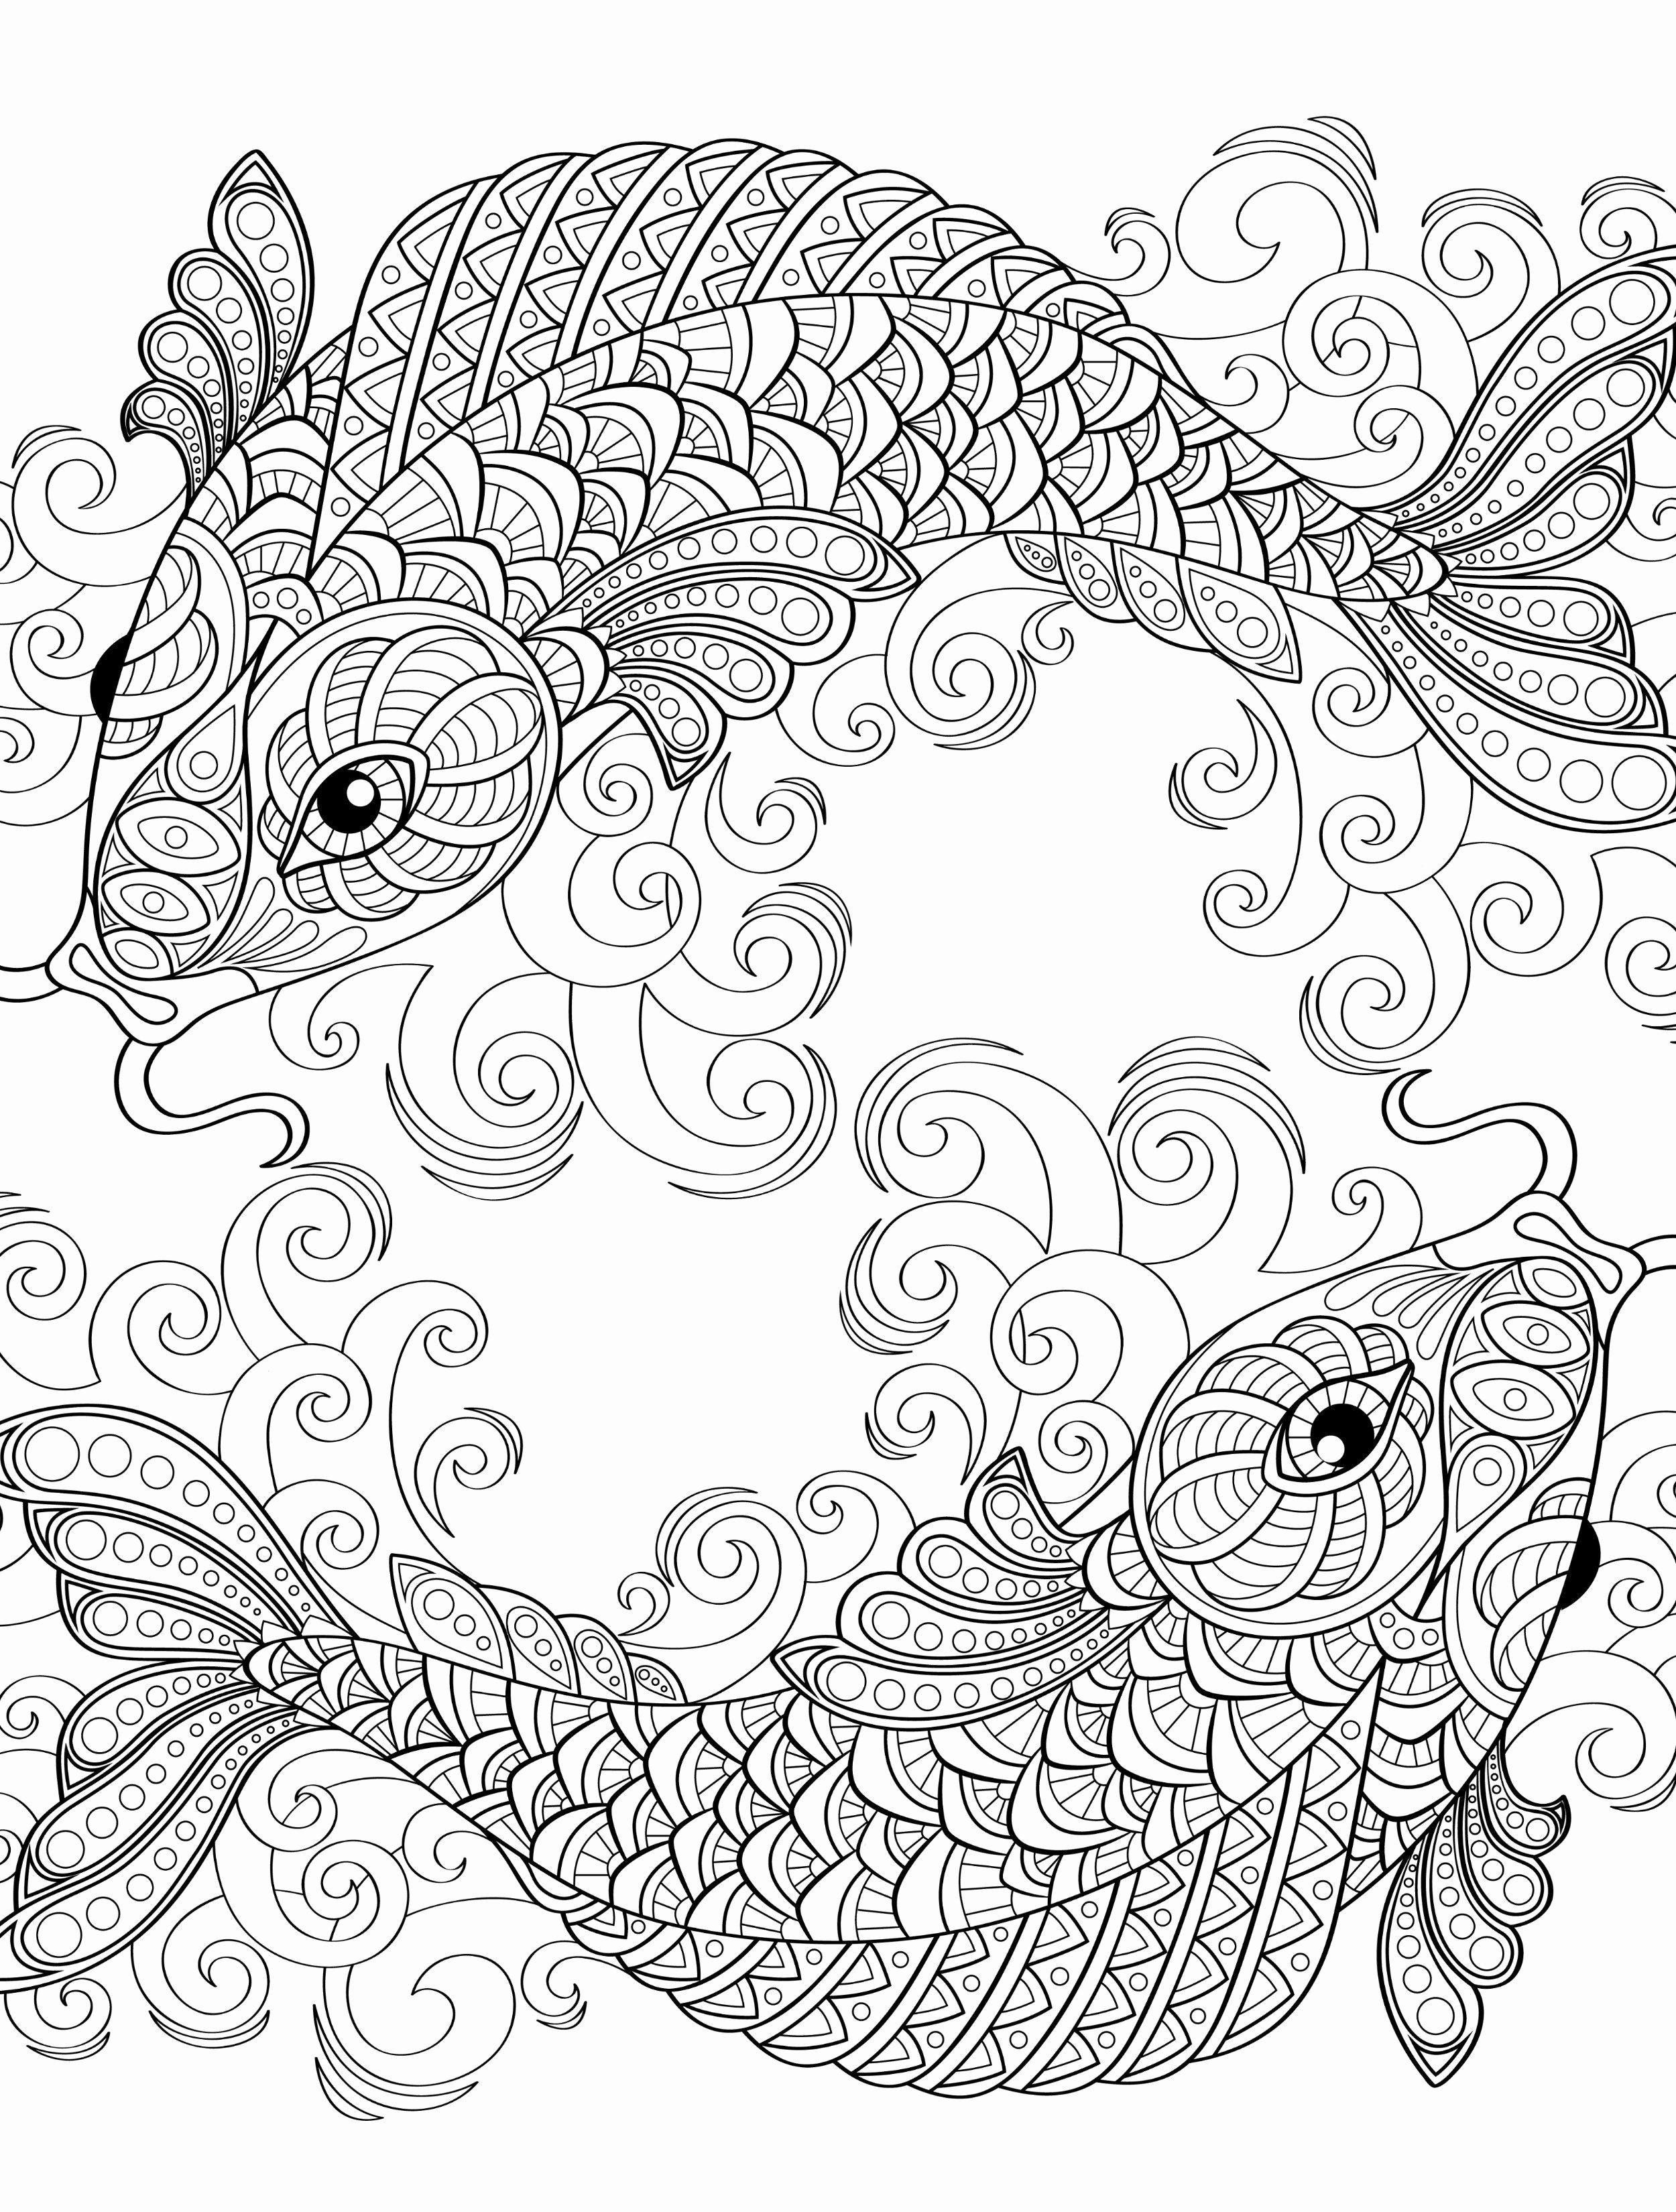 Day Of The Dead Coloring Pages Fresh Sugar Skull Coloring Page Skull Coloring Pages Animal Coloring Books Fish Coloring Page